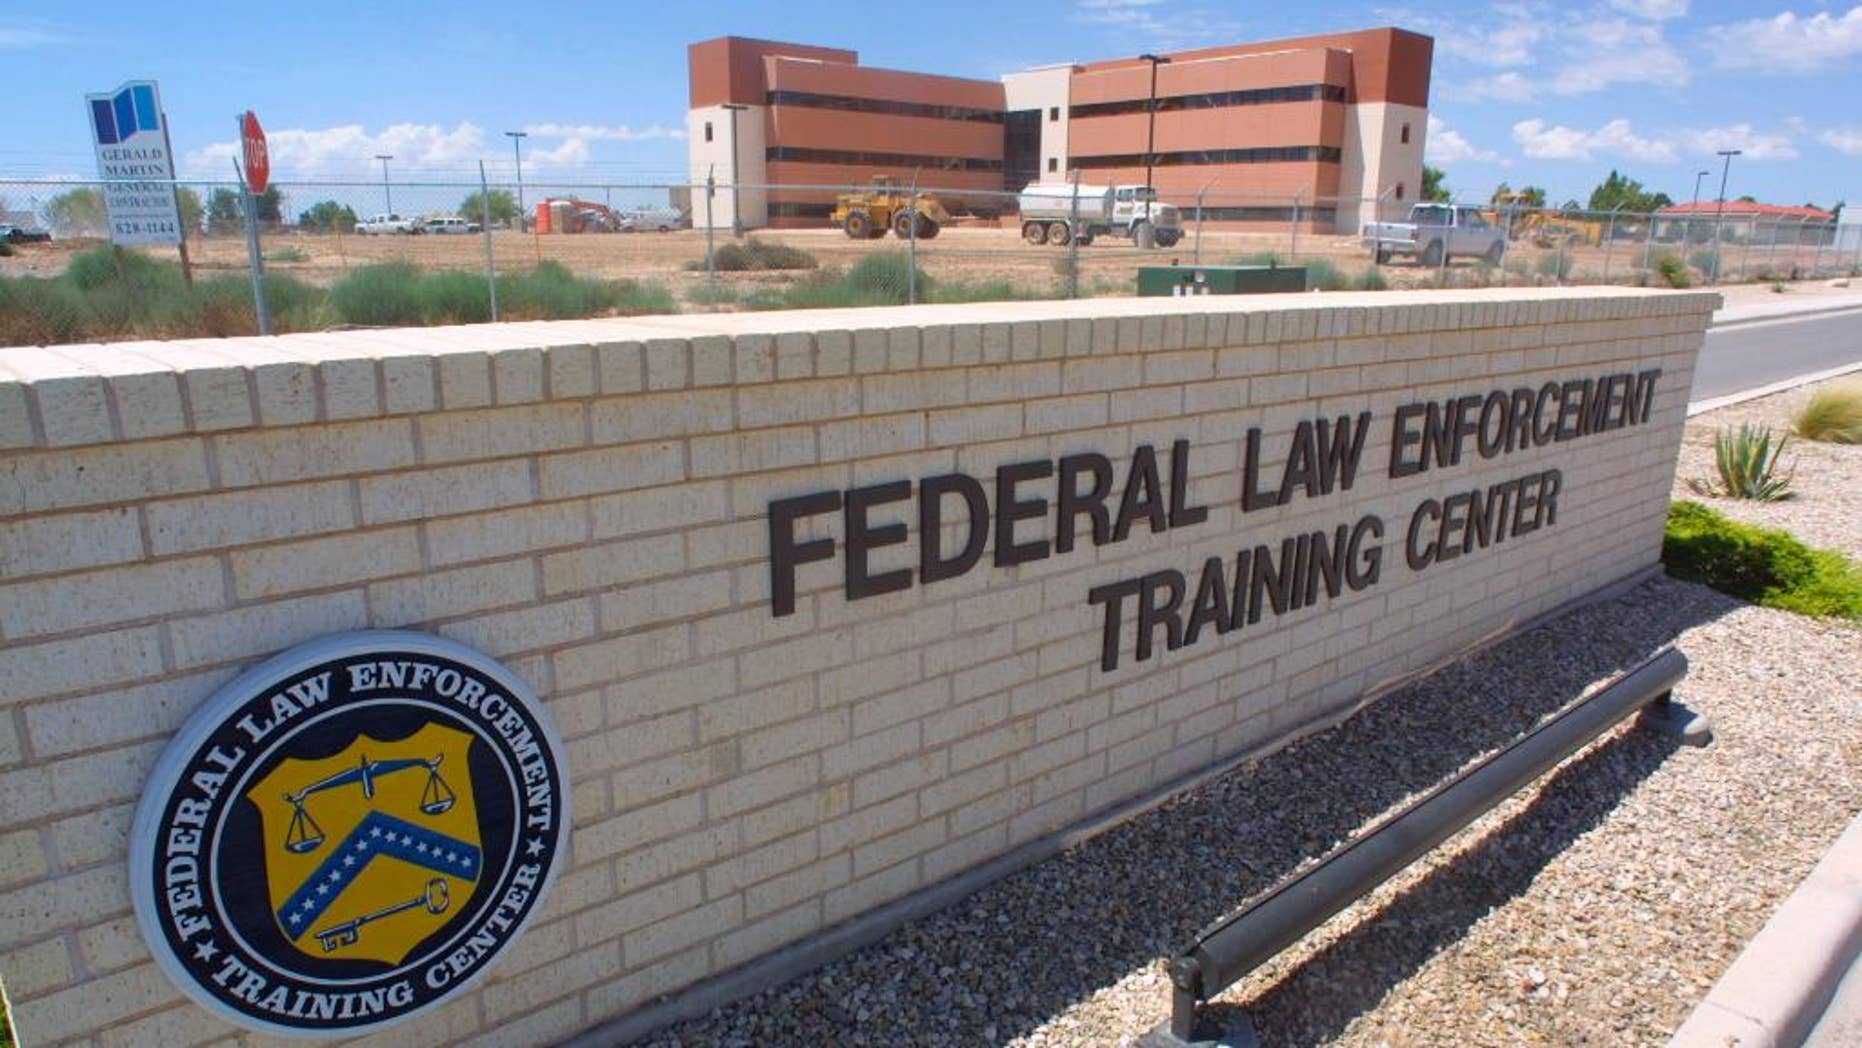 FILE - In this Aug. 1, 2002 file photo, the Federal Law Enforcement Training Center in Artesia, N.M., where agents for the Federal Air Marshal Service undergo training. Incidents of unruly passengers on planes are increasing, and more effective deterrents are needed to tackle the problem, a global airline trade group said Wednesday, Sept. 28, 2016. There were 10,854 air rage incidents reported by airlines worldwide last year, up from 9,316 incidents in 2014, according to the International Air Transport Association. That equates to one incident for every 1,205 flights, an increase from one incident per 1,282 flights the previous year.  (AP Photo/J.R. Hernandez, File)